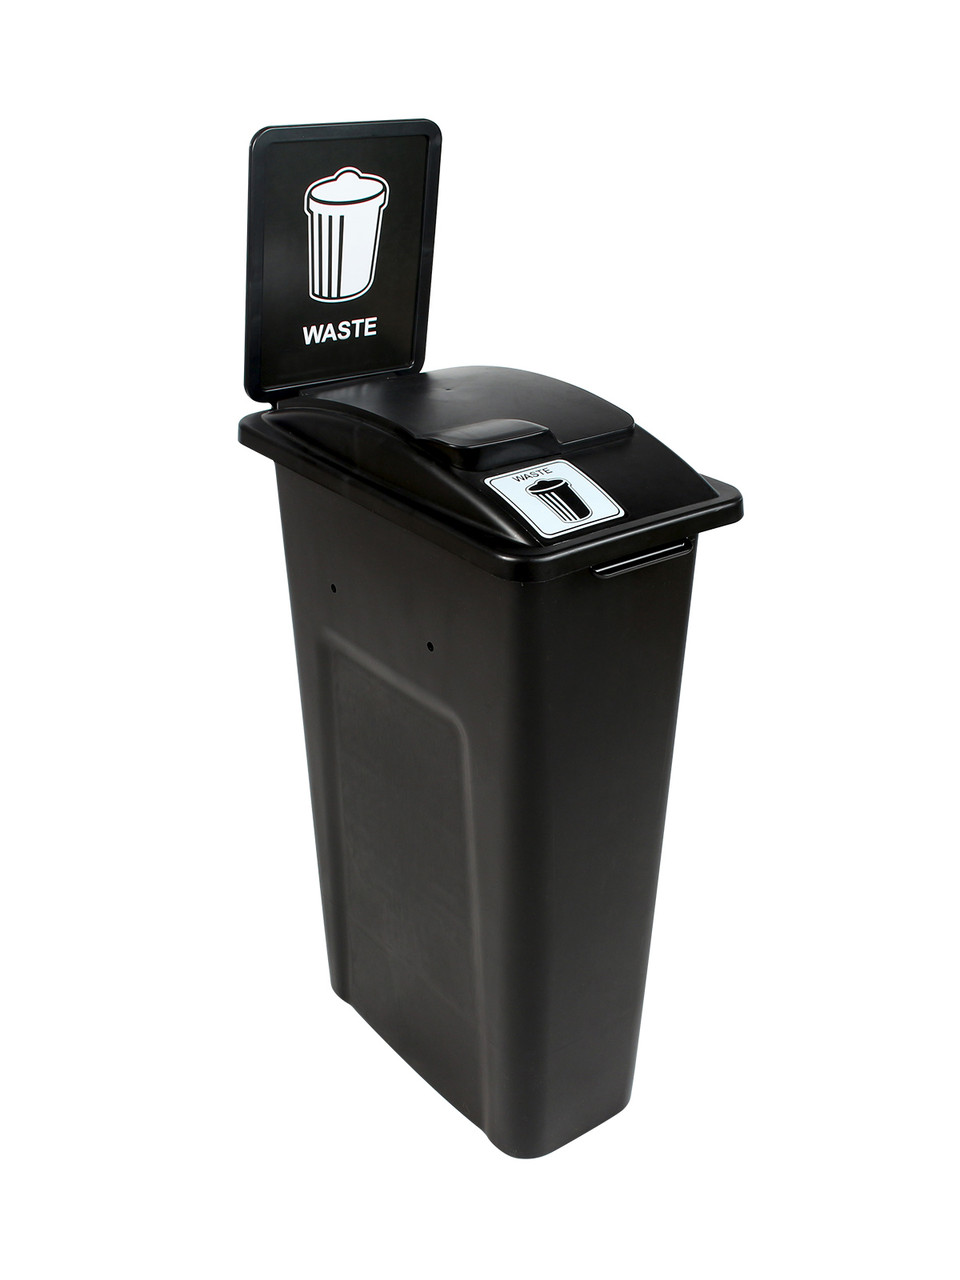 23 Gallon Black Skinny Simple Sort Waste Can with Sign (Waste, Lift Top)